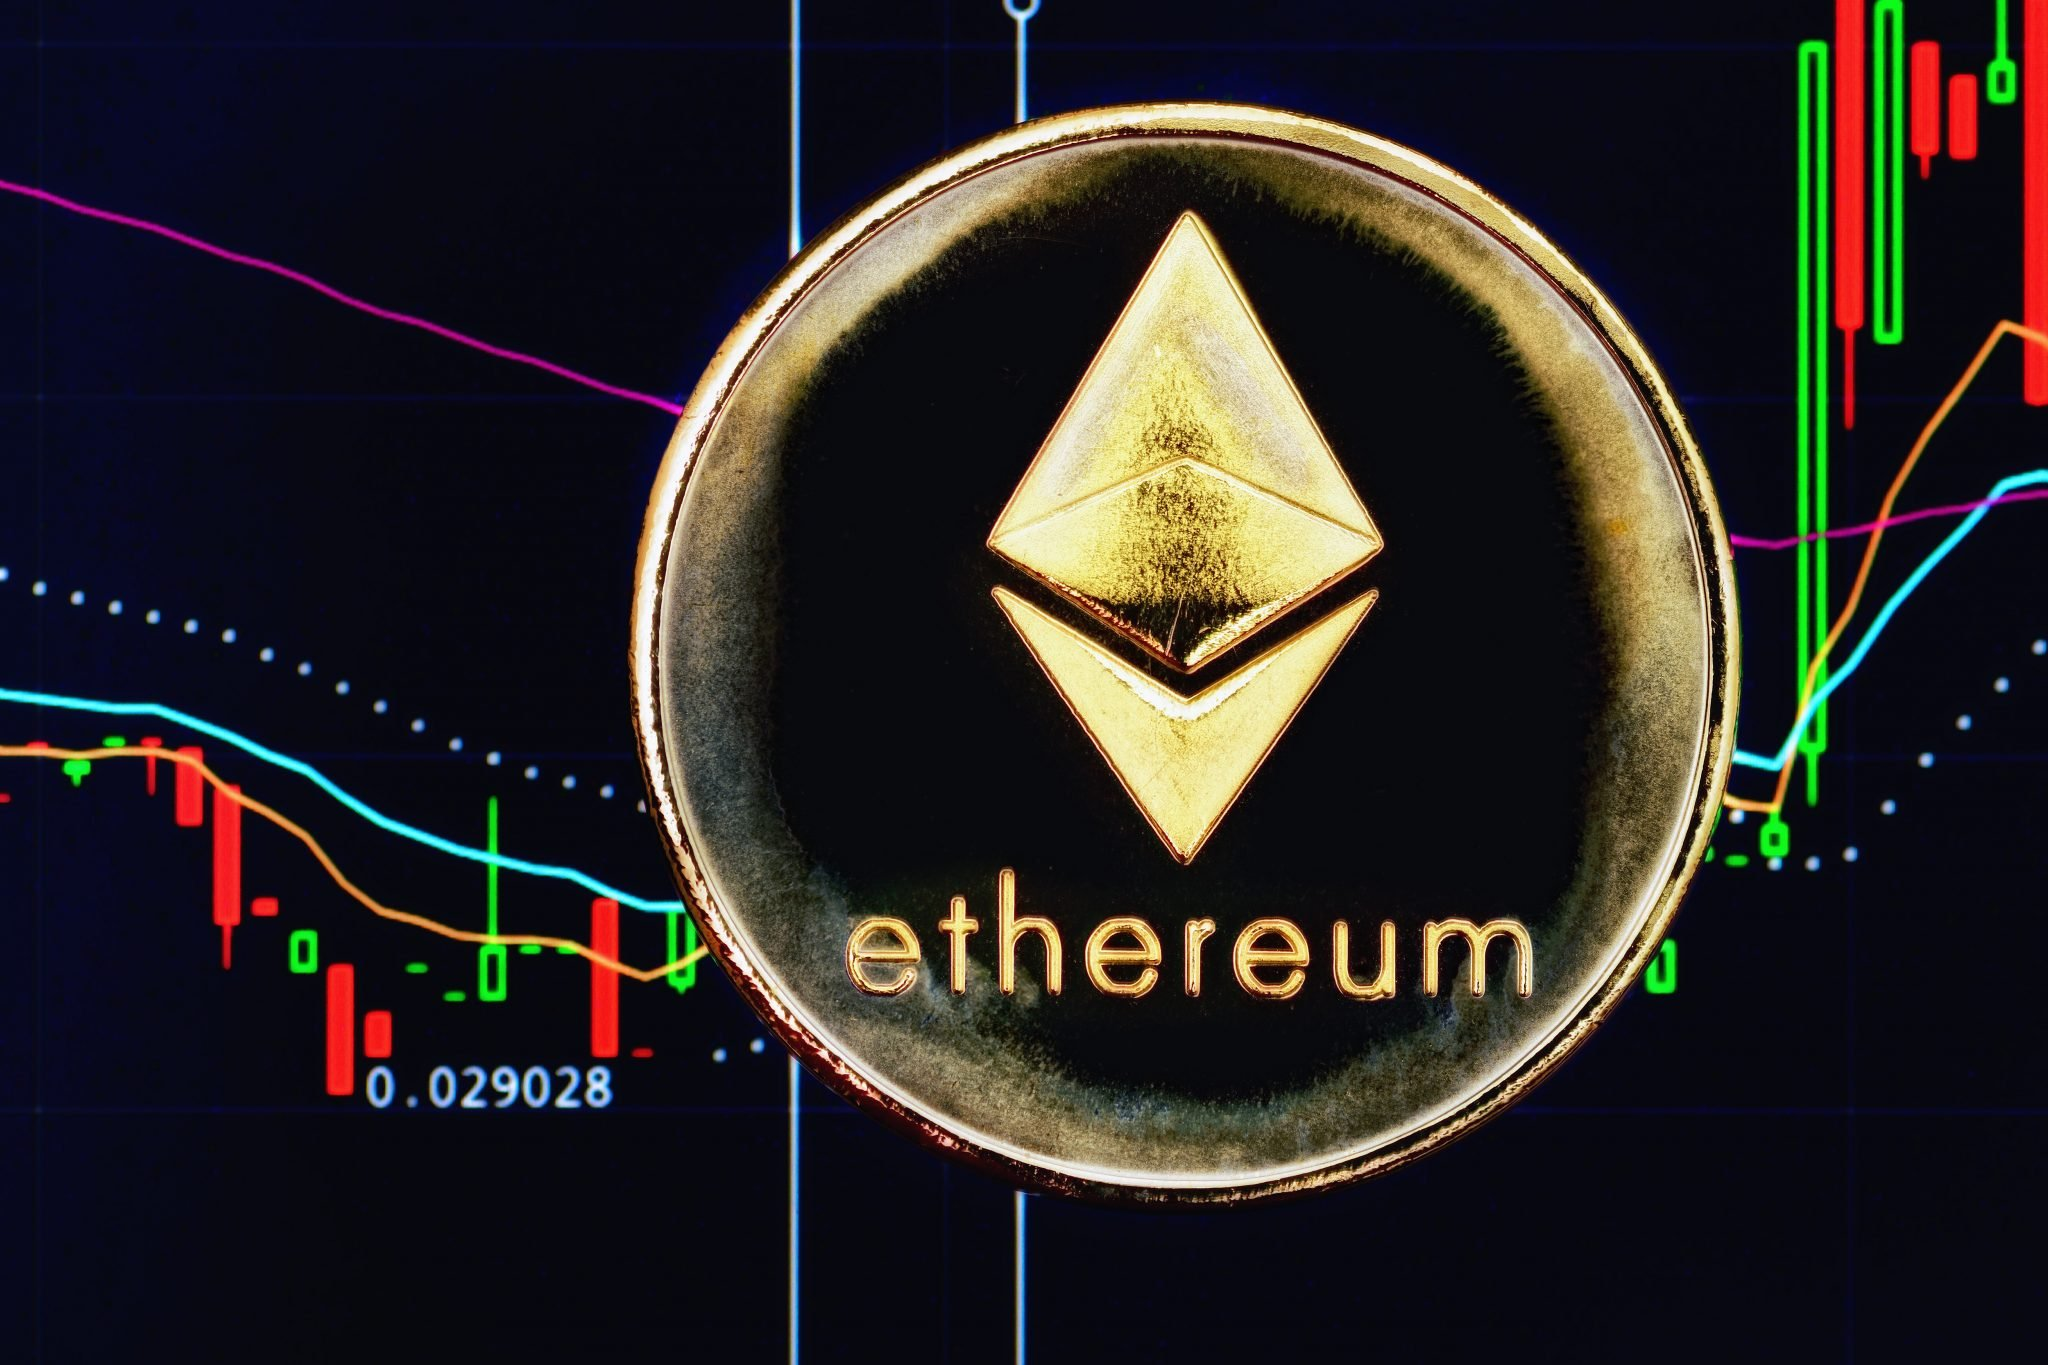 Crypto currency Ethereum